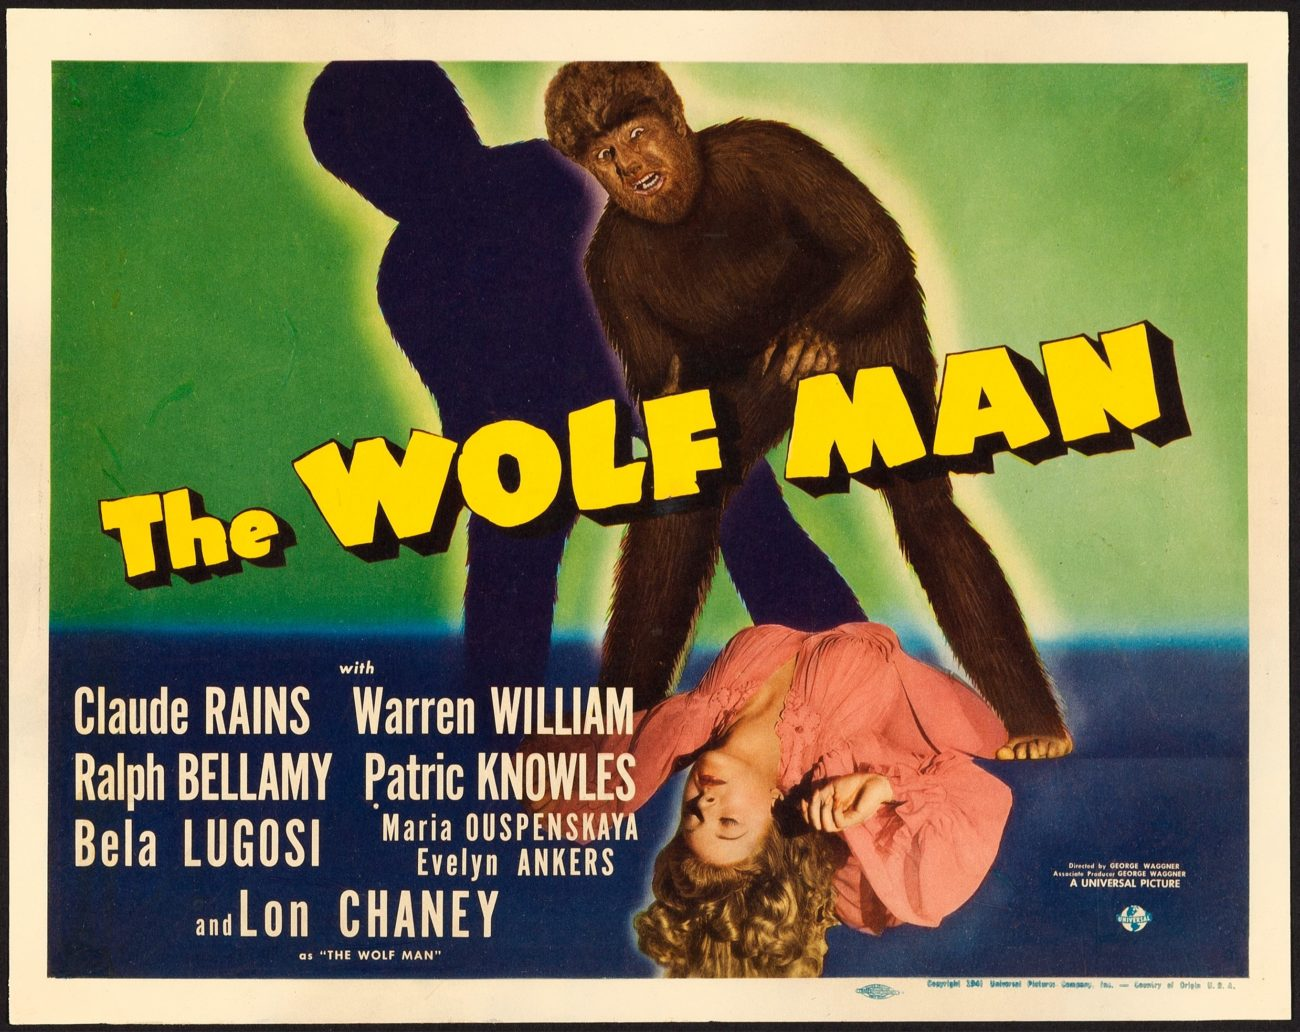 The Wolfman (1941) movie poster – Dangerous Universe